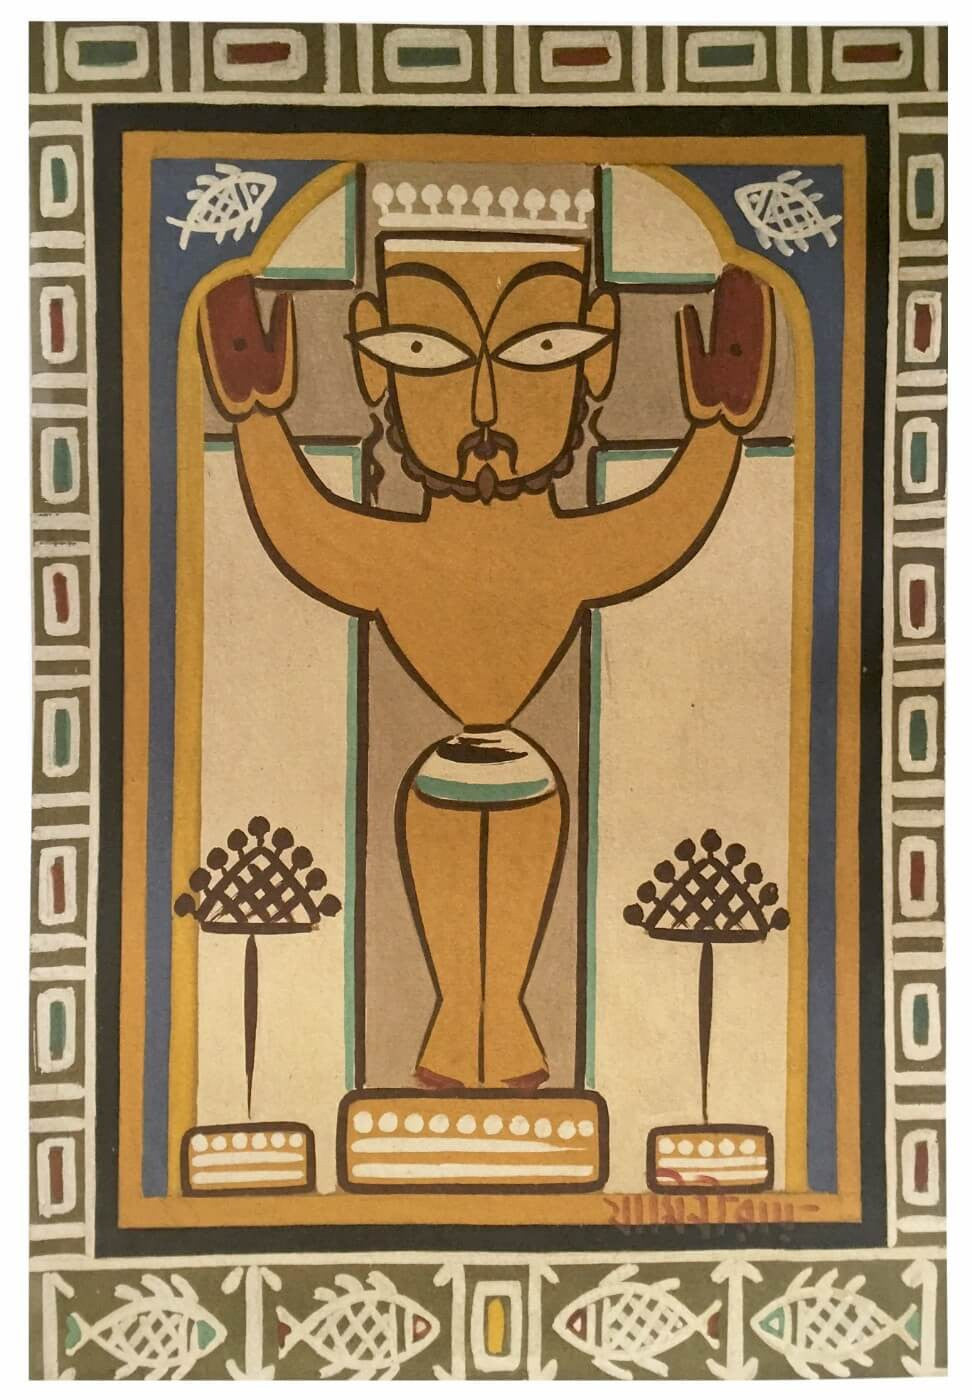 jesus christ posters by jamini roy buy posters frames canvas